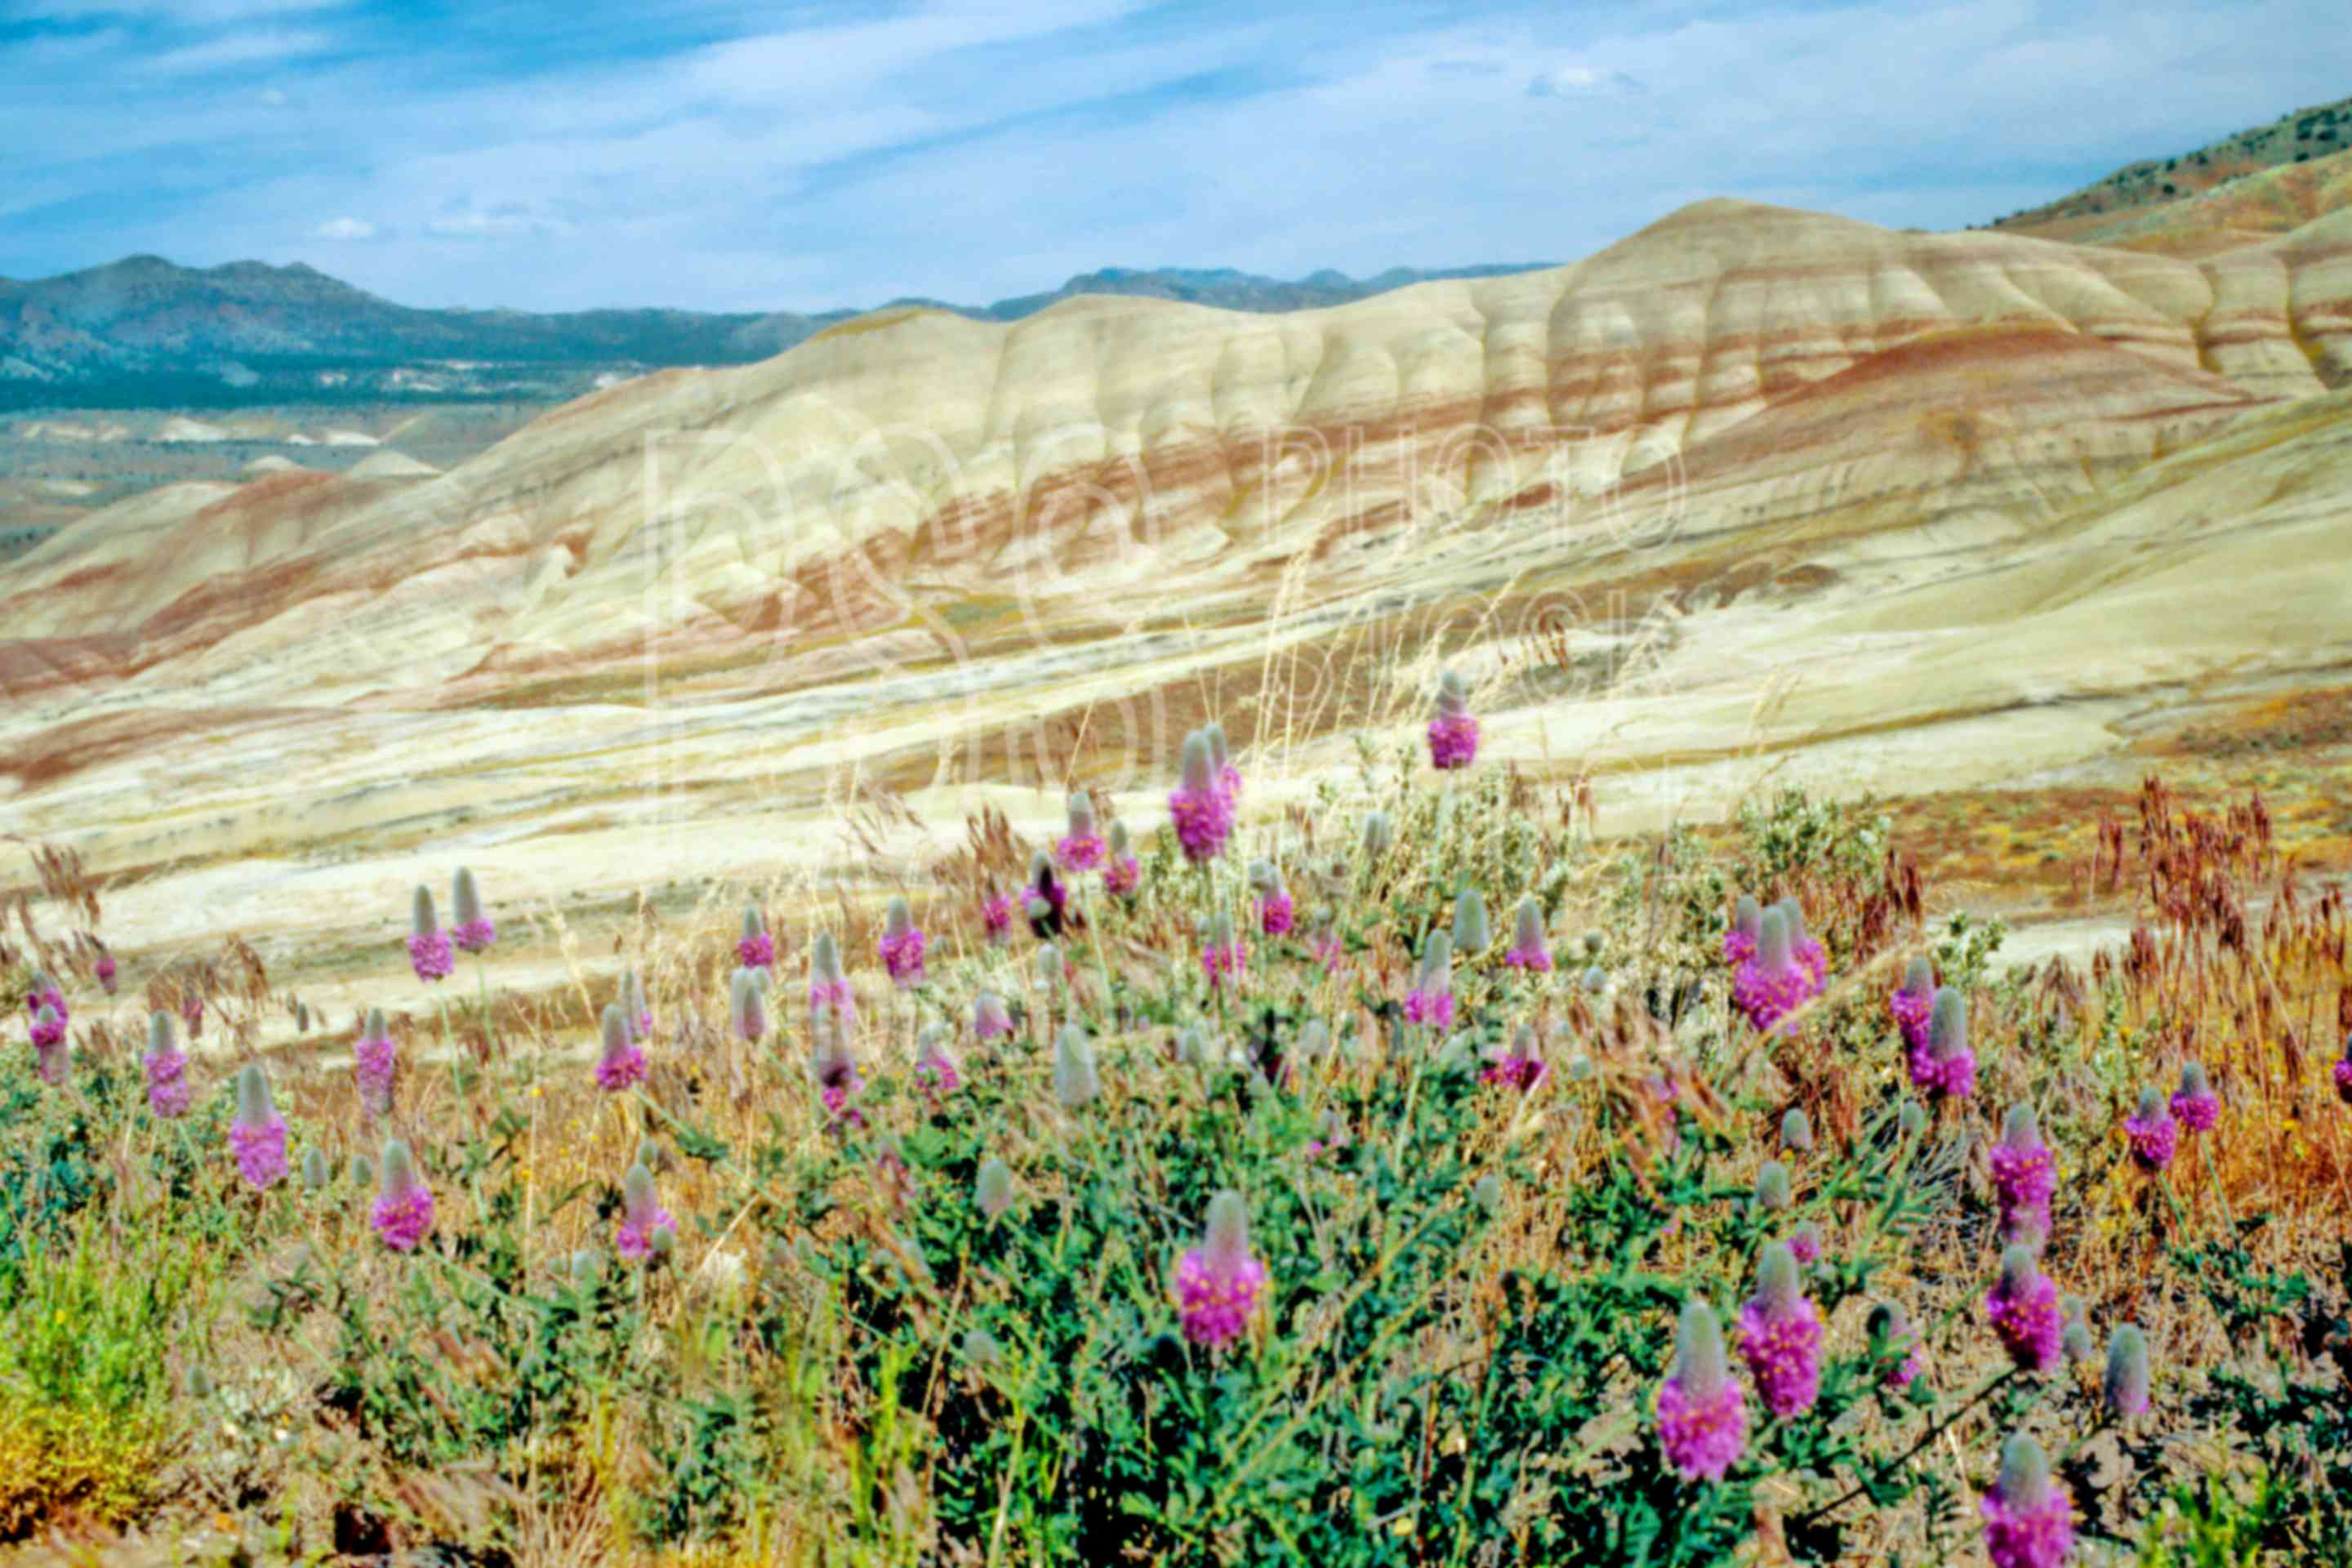 Painted Hills,john day fossil beds national monument,fossil bed,red clover,clover,usas